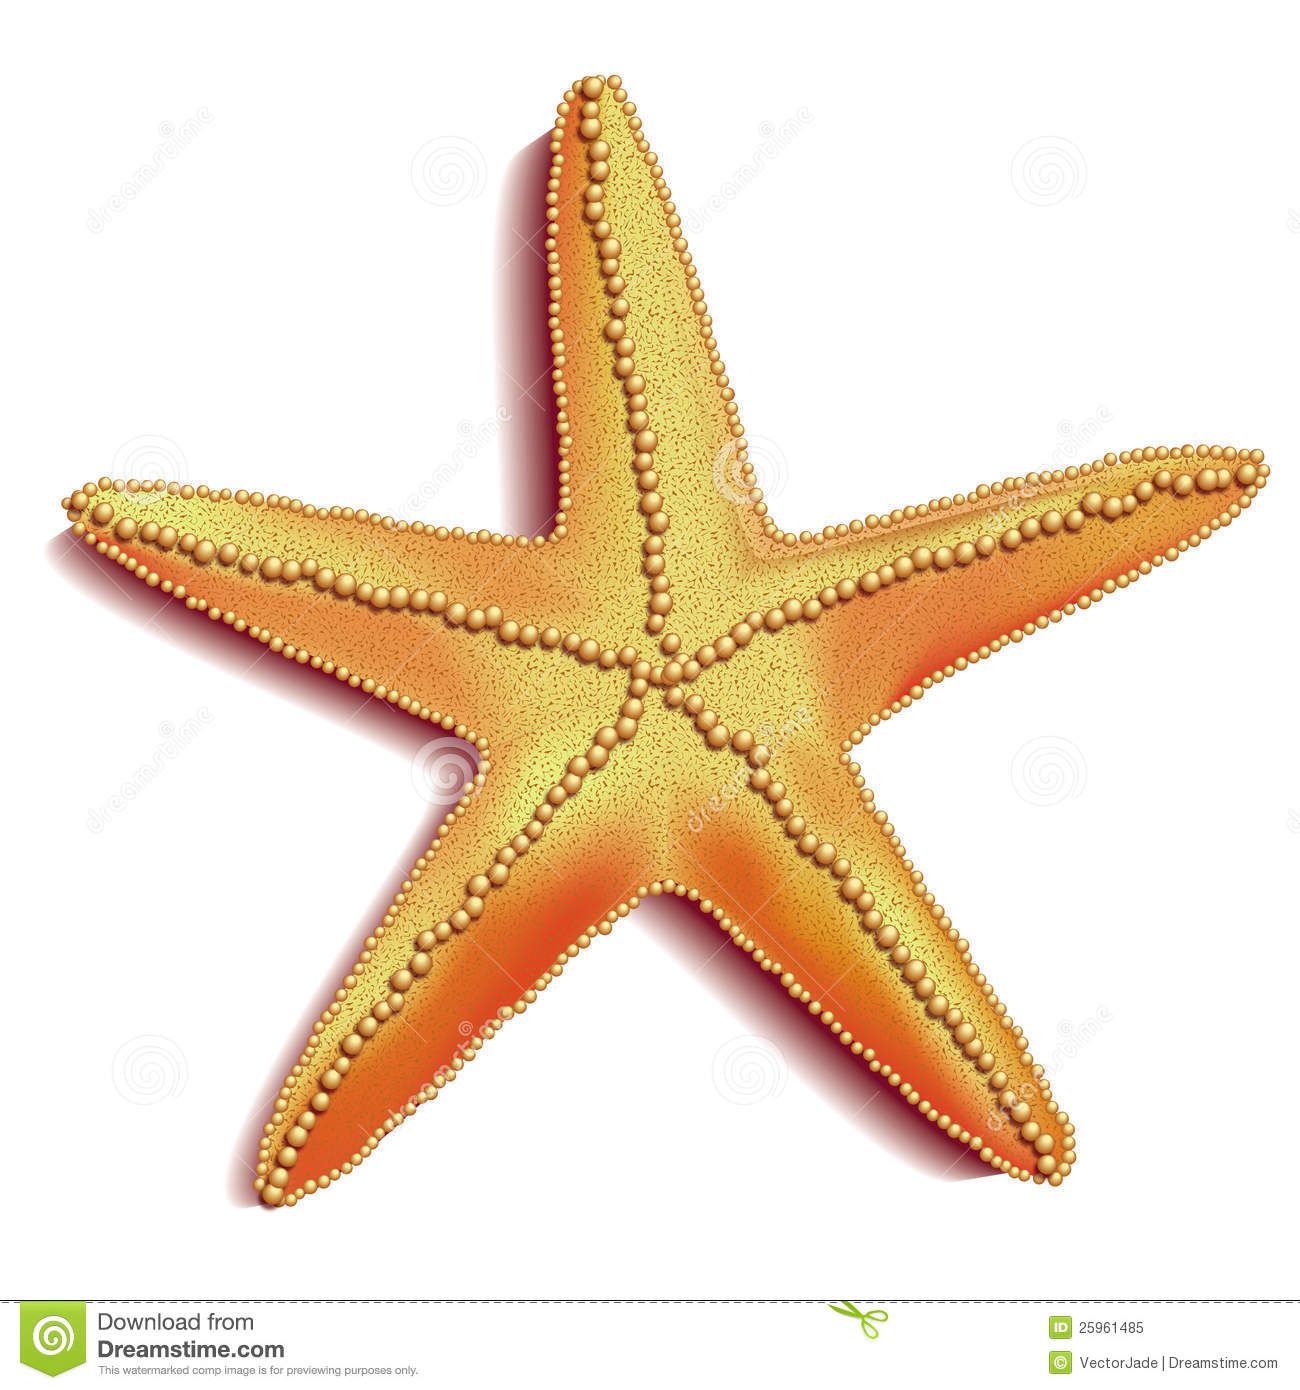 Starfish Vector Royalty Free Stock Photo - Image: 25961485